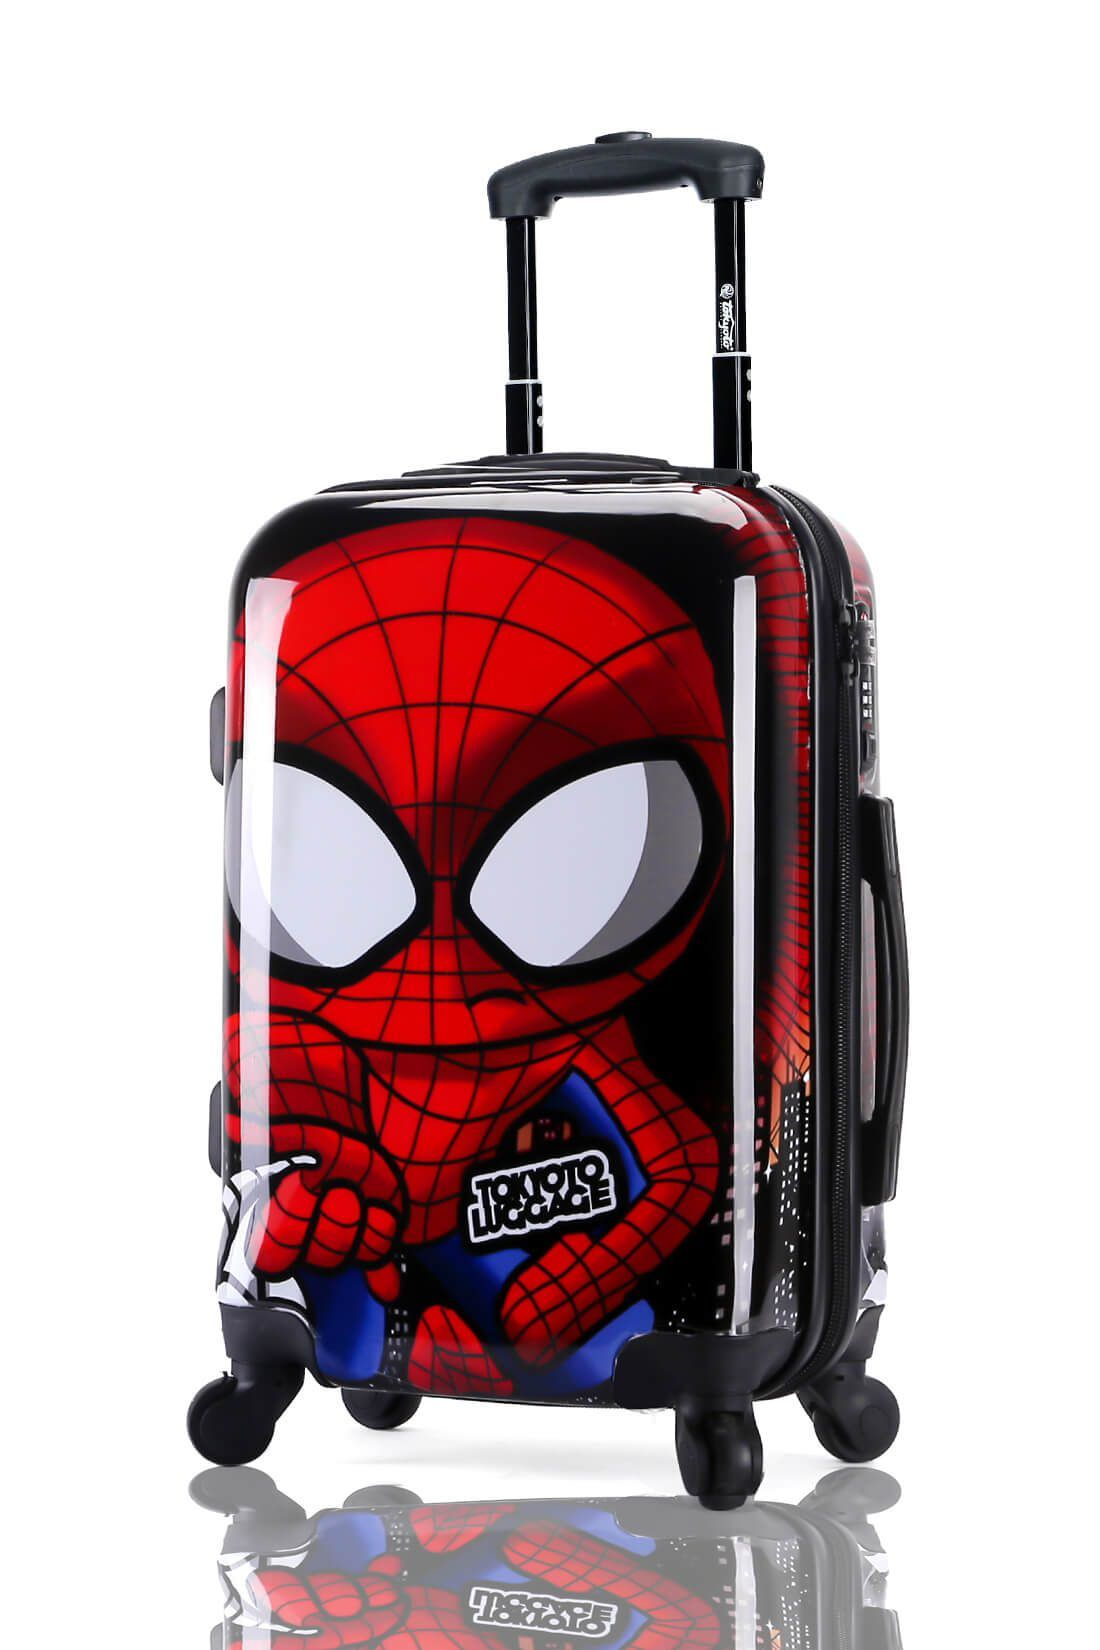 Suitcase Luggage Cabin Size Kids Trolleys TOKYOTO LUGGAGE Model SPIDER BOY 5